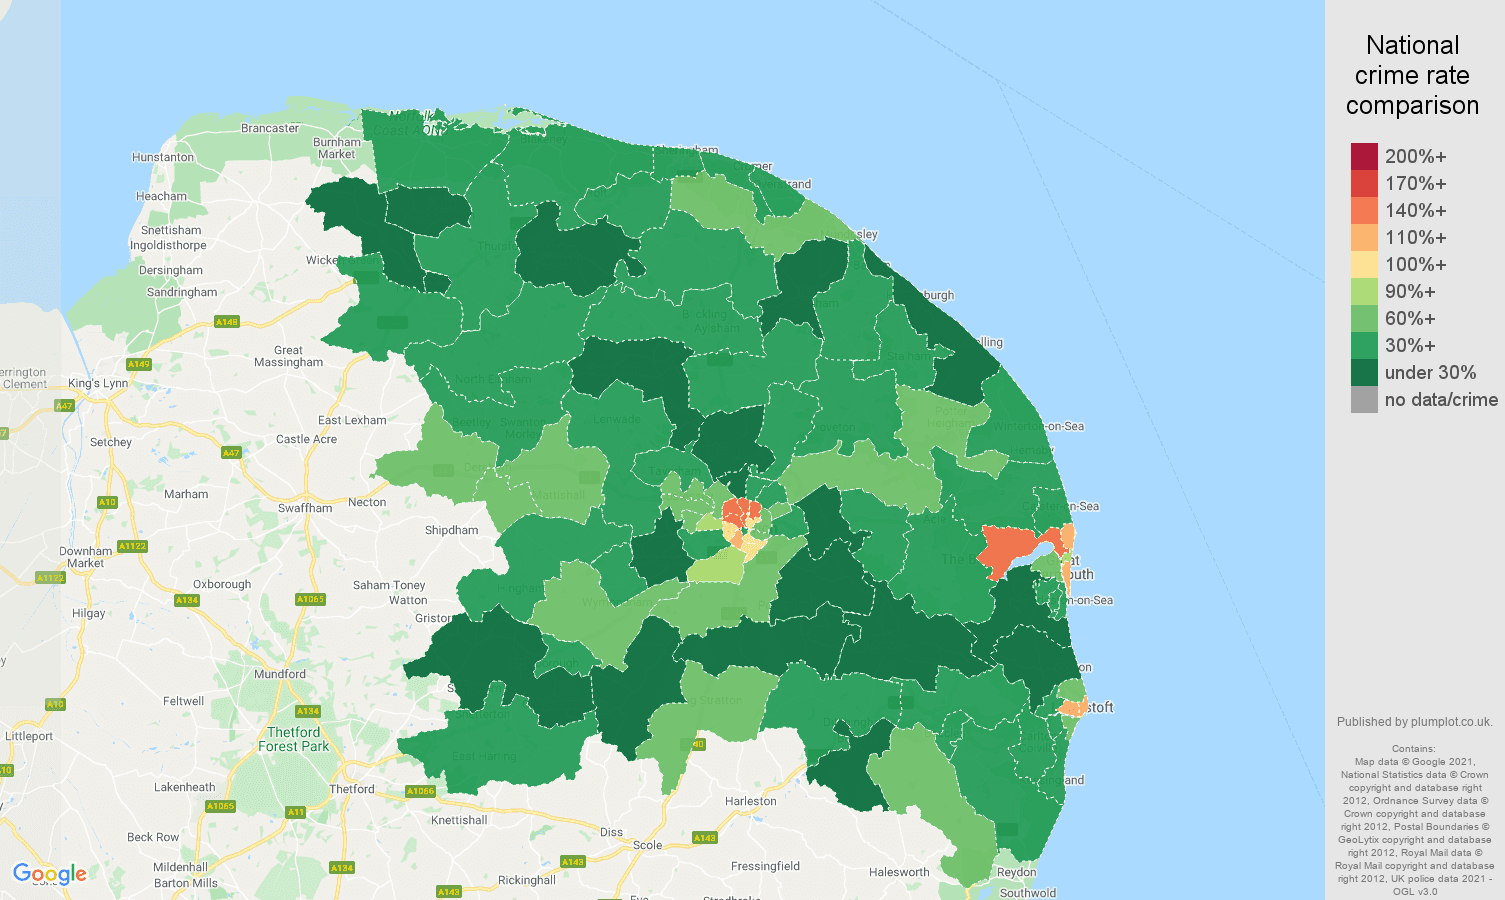 Norwich burglary crime rate comparison map